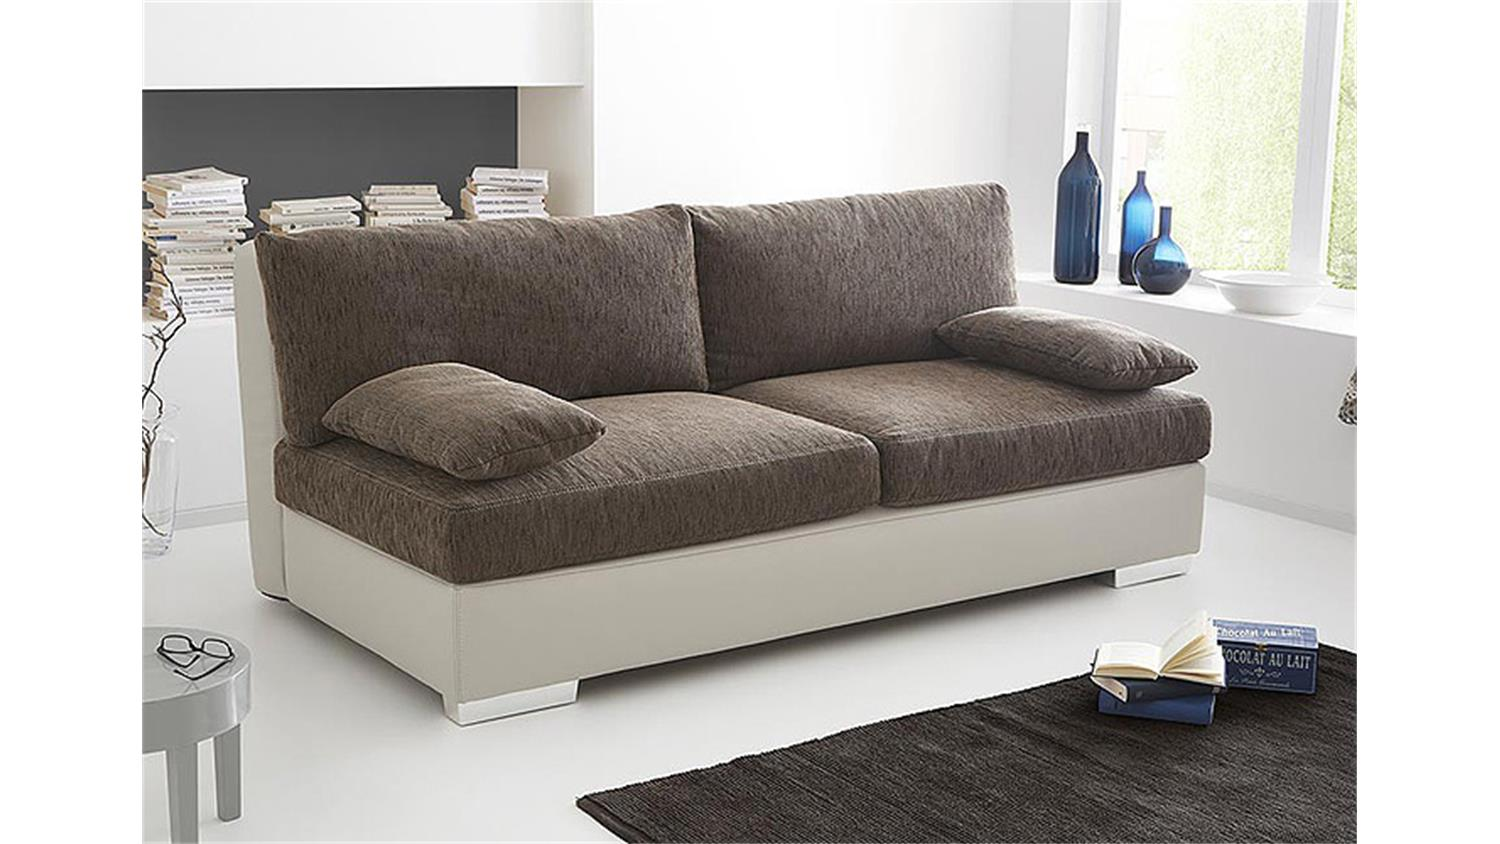 schlafsofa dorset sofa boxspring in greige braun 202 cm. Black Bedroom Furniture Sets. Home Design Ideas